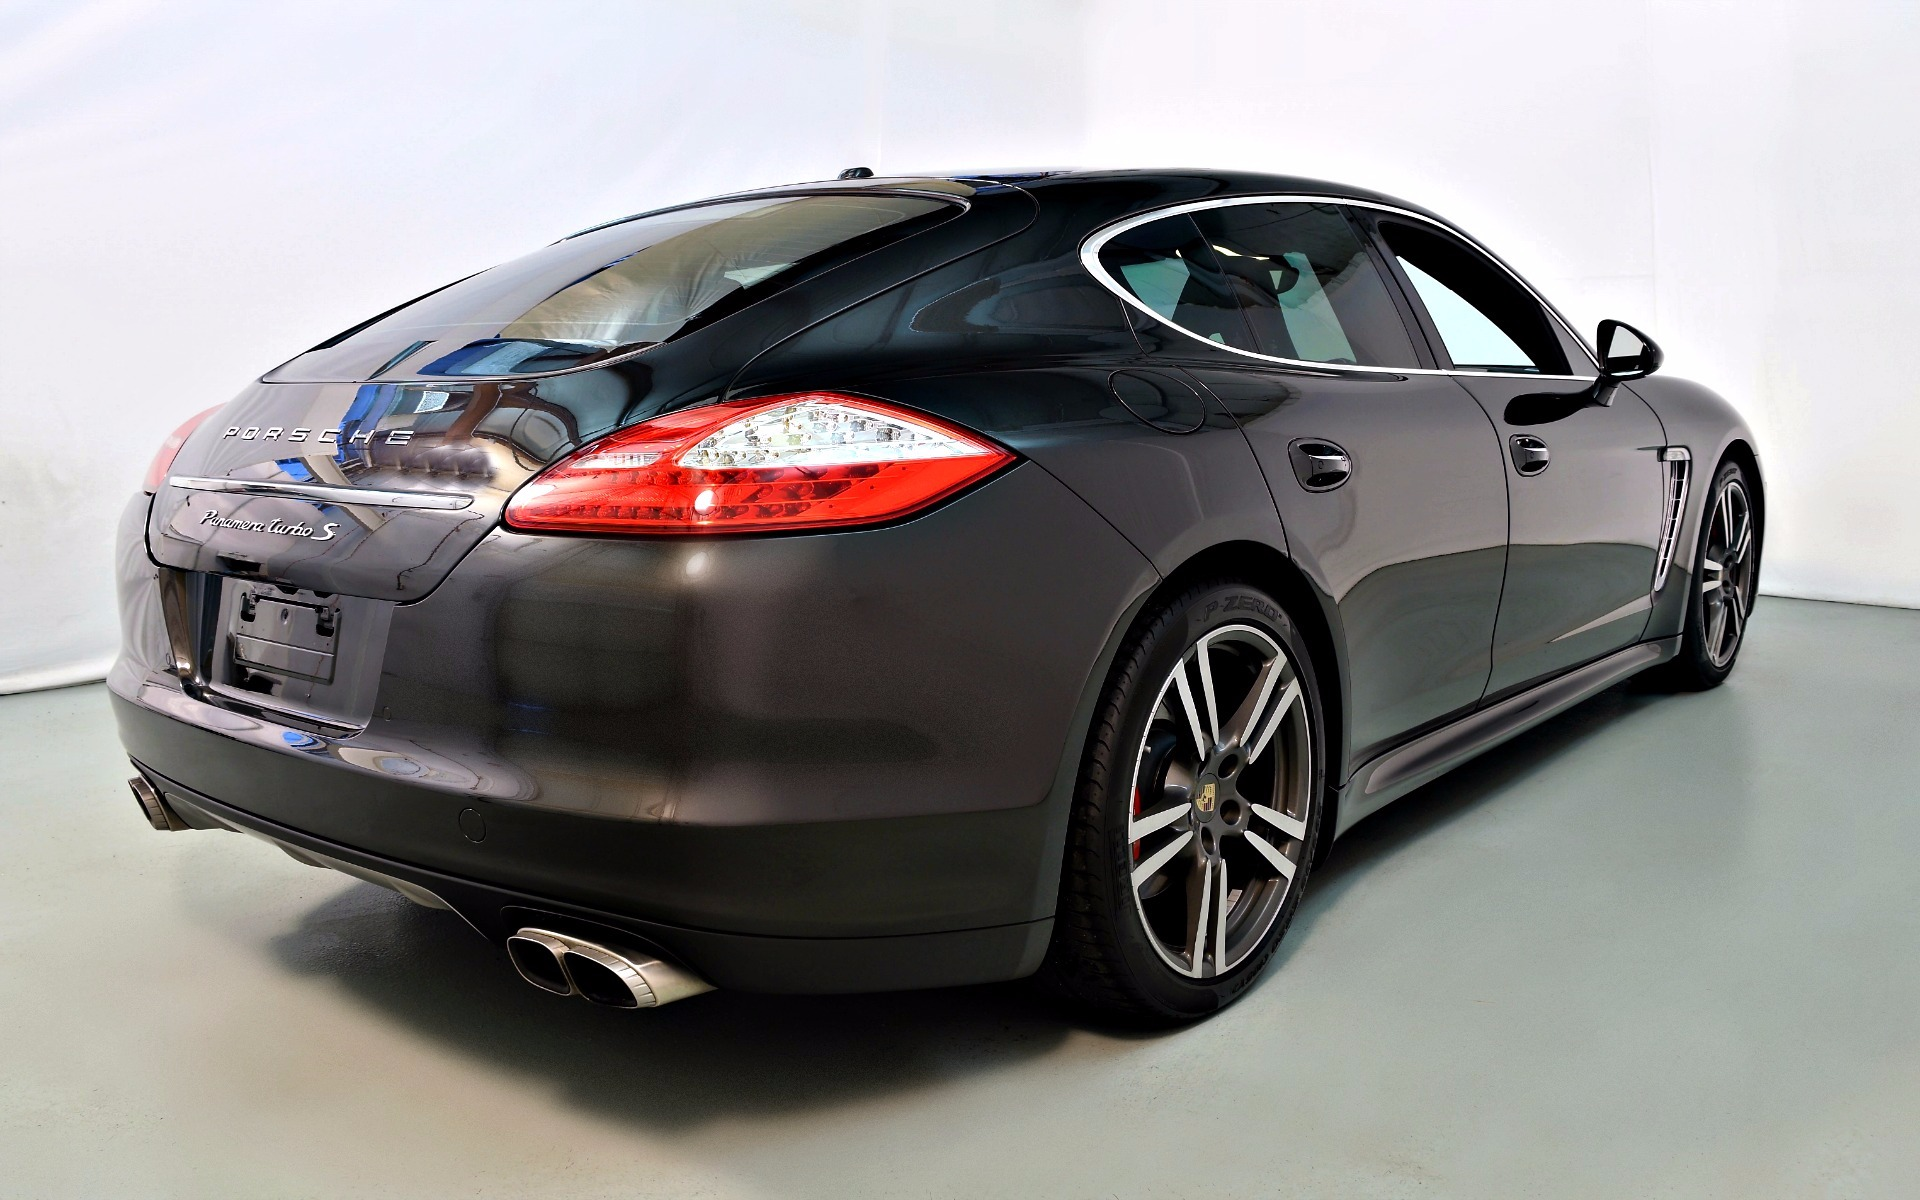 2012 porsche panamera turbo s for sale in norwell ma 090976 mclaren boston. Black Bedroom Furniture Sets. Home Design Ideas